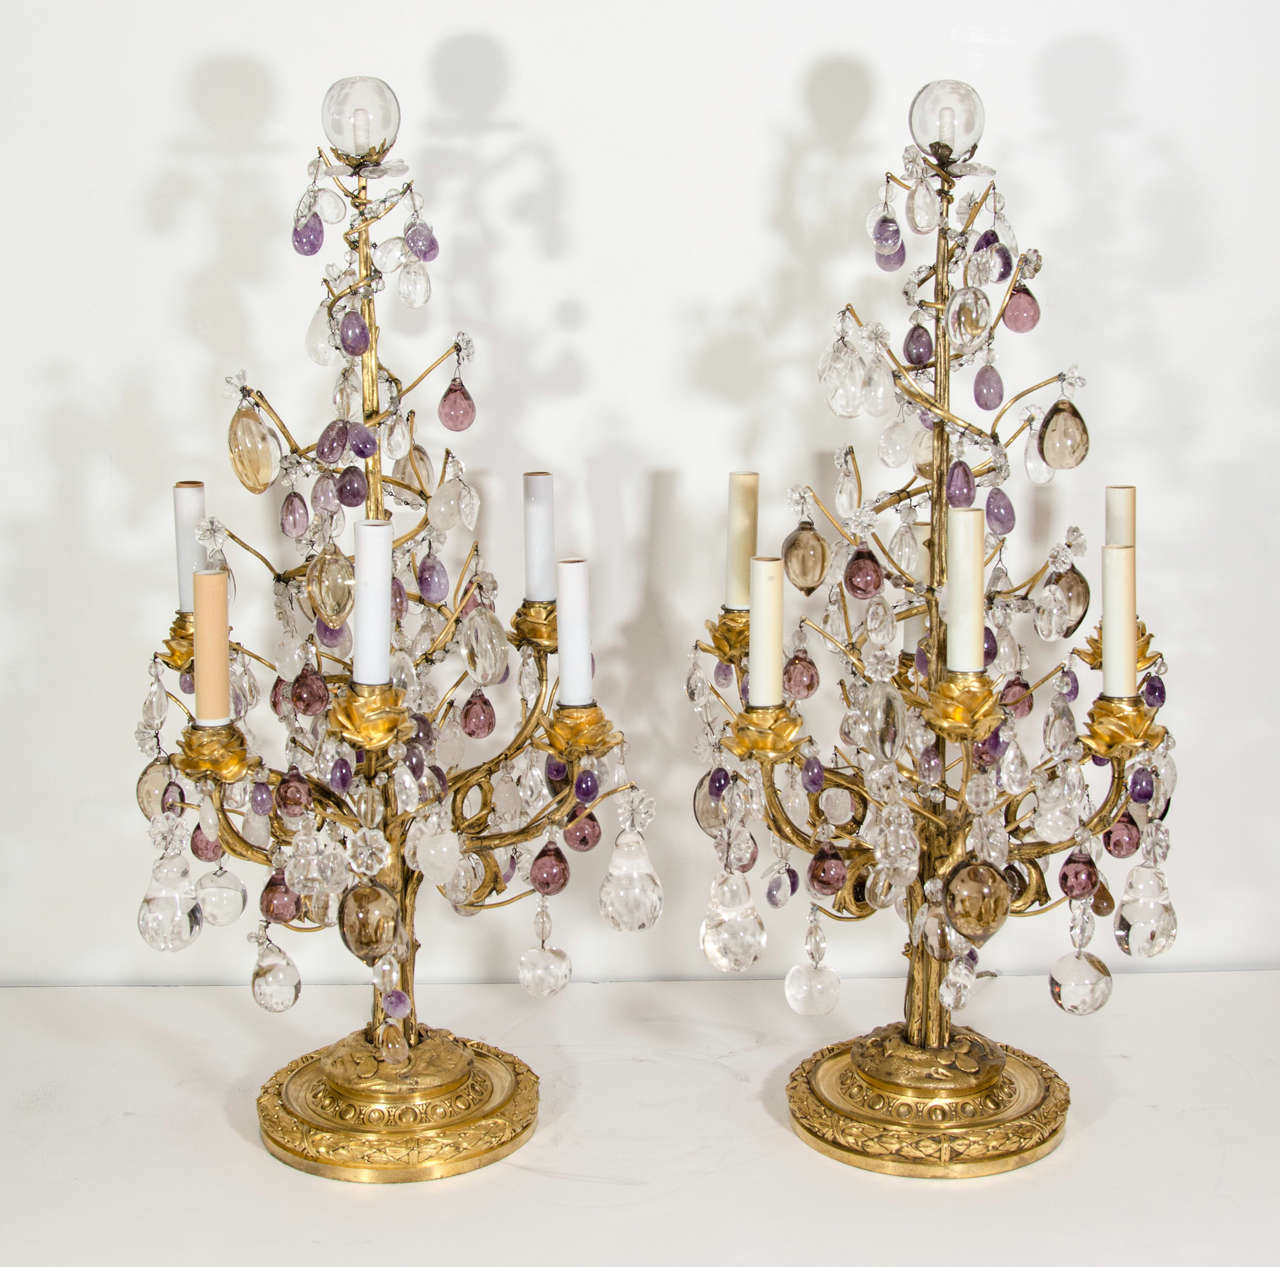 A Pair of Exquisite & Rare Antique French Louis XVI Style Gilt Bronze, Cut Rock Crystal, Amethyst Rock Crystal & Amber Glass multi light Candelabra Table Lamps embellished with gilt bronze floral arms & further adorned with rock crystal fruits and